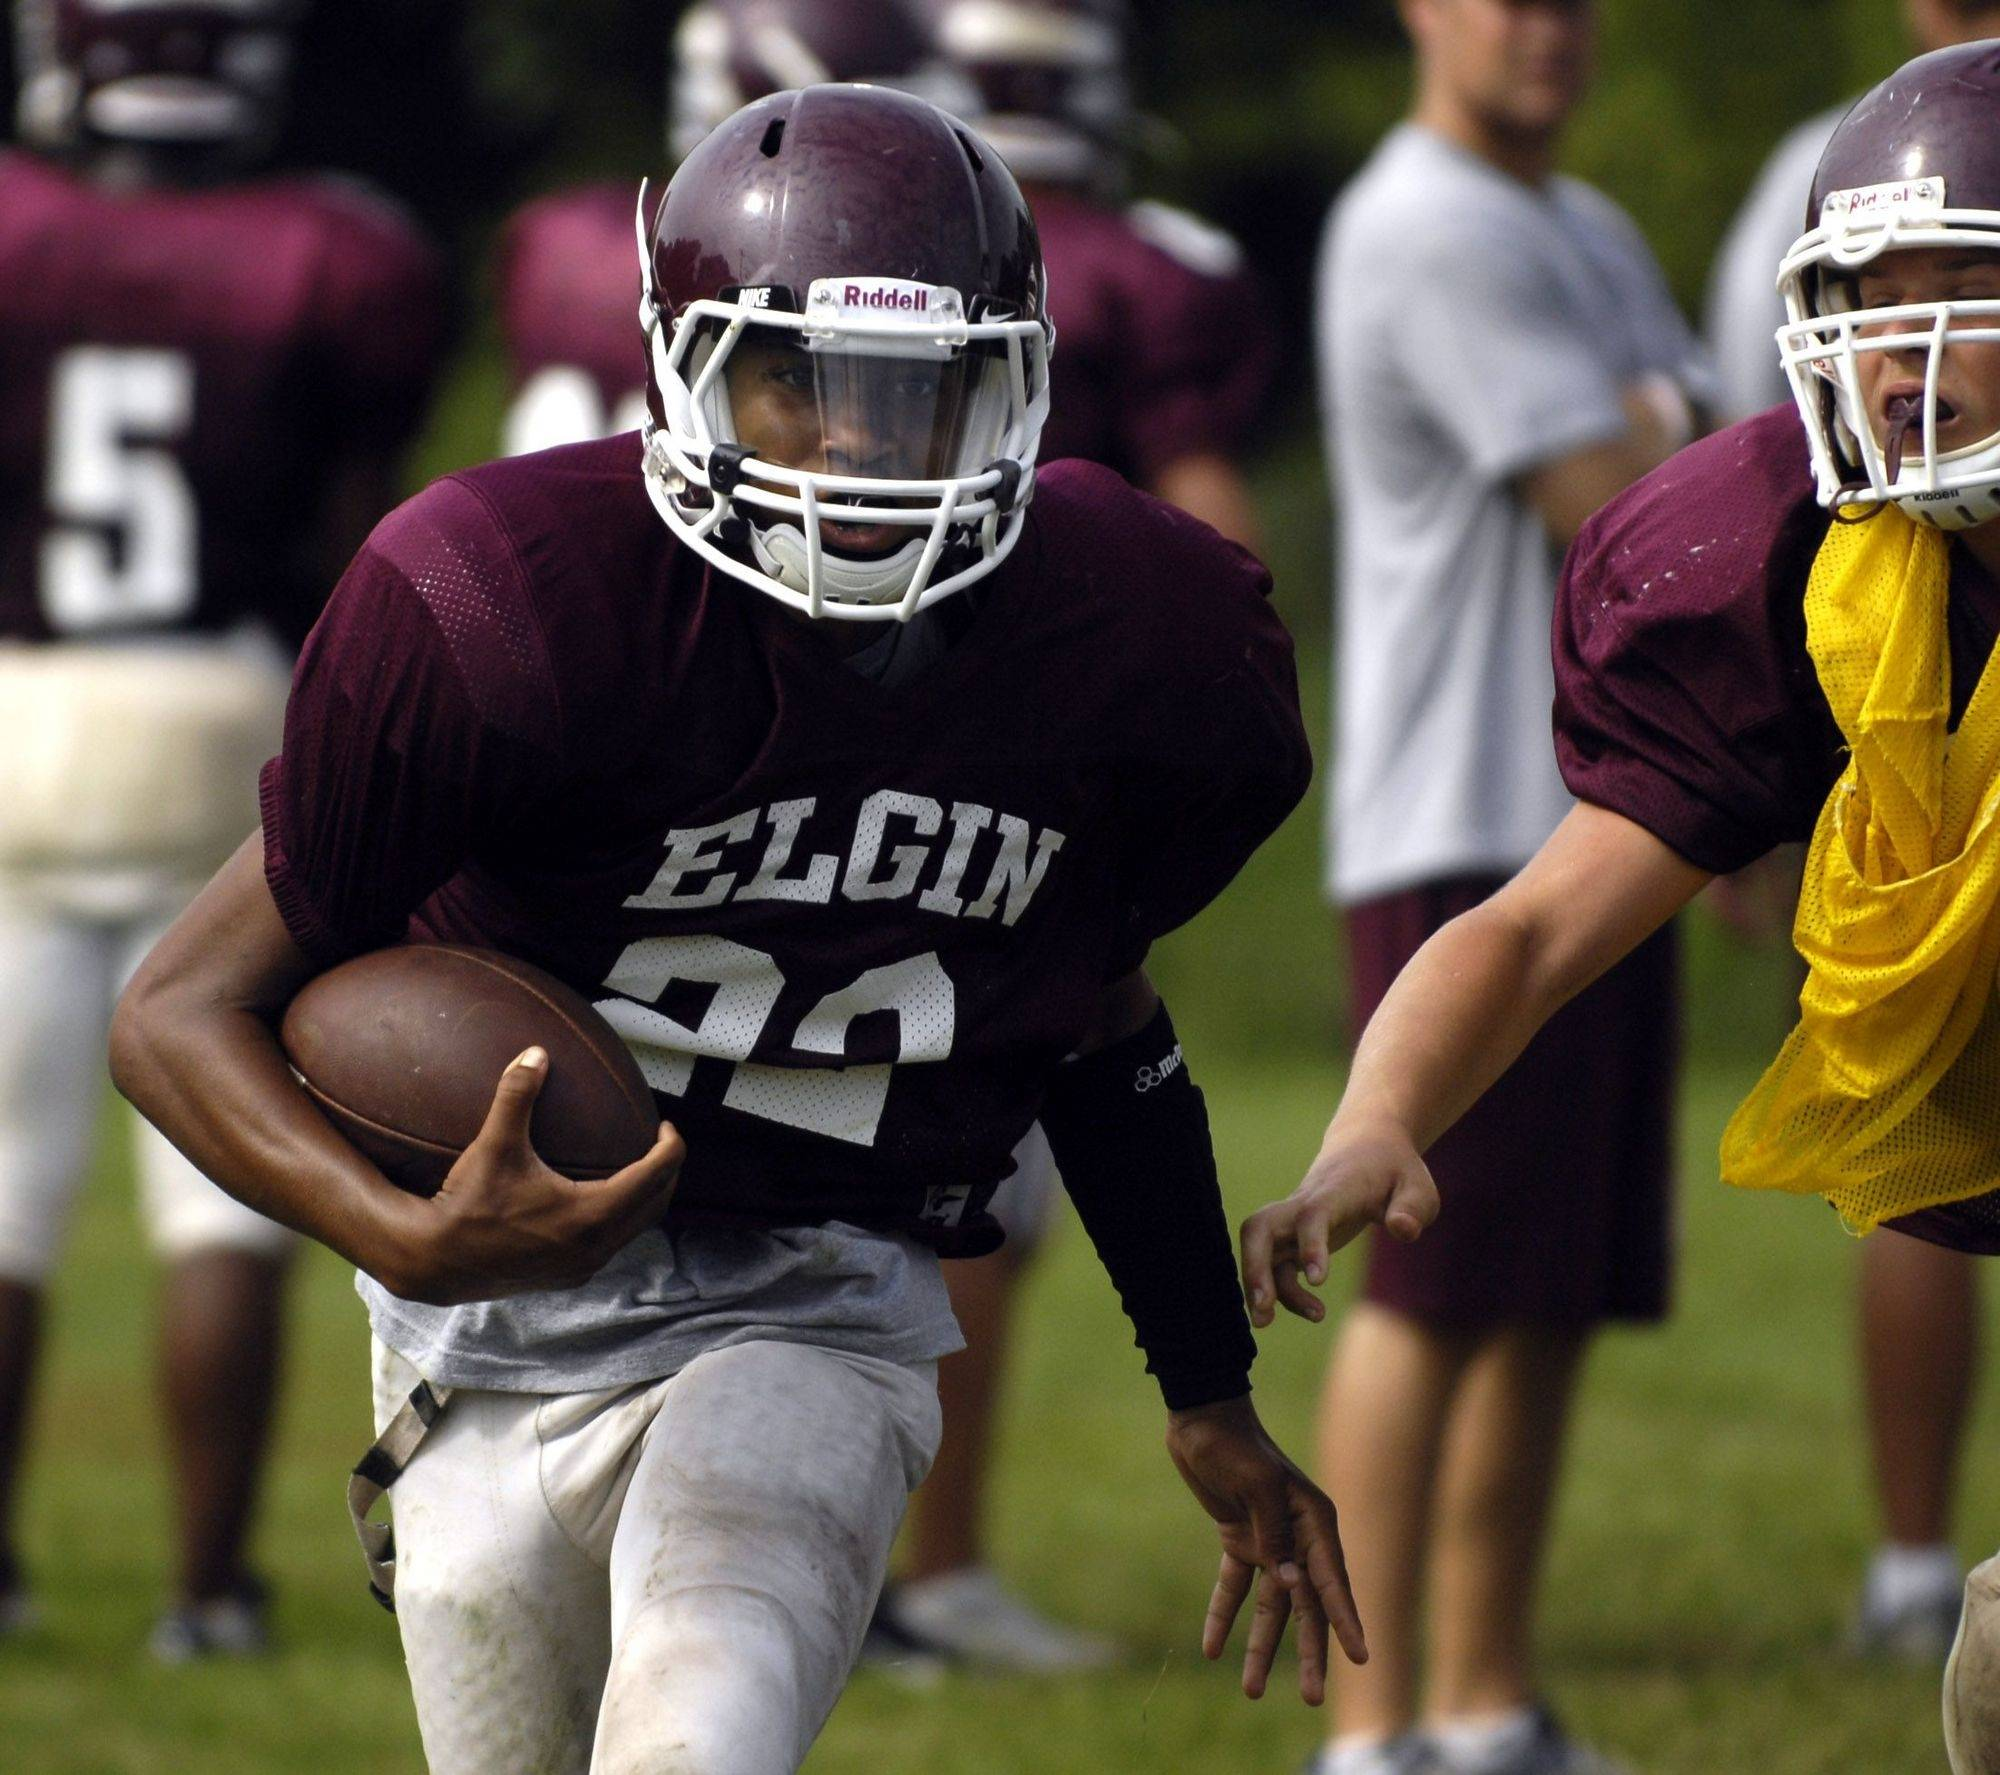 Devin Simon gets upfield during preseason football practice at Elgin High School Wednesday.